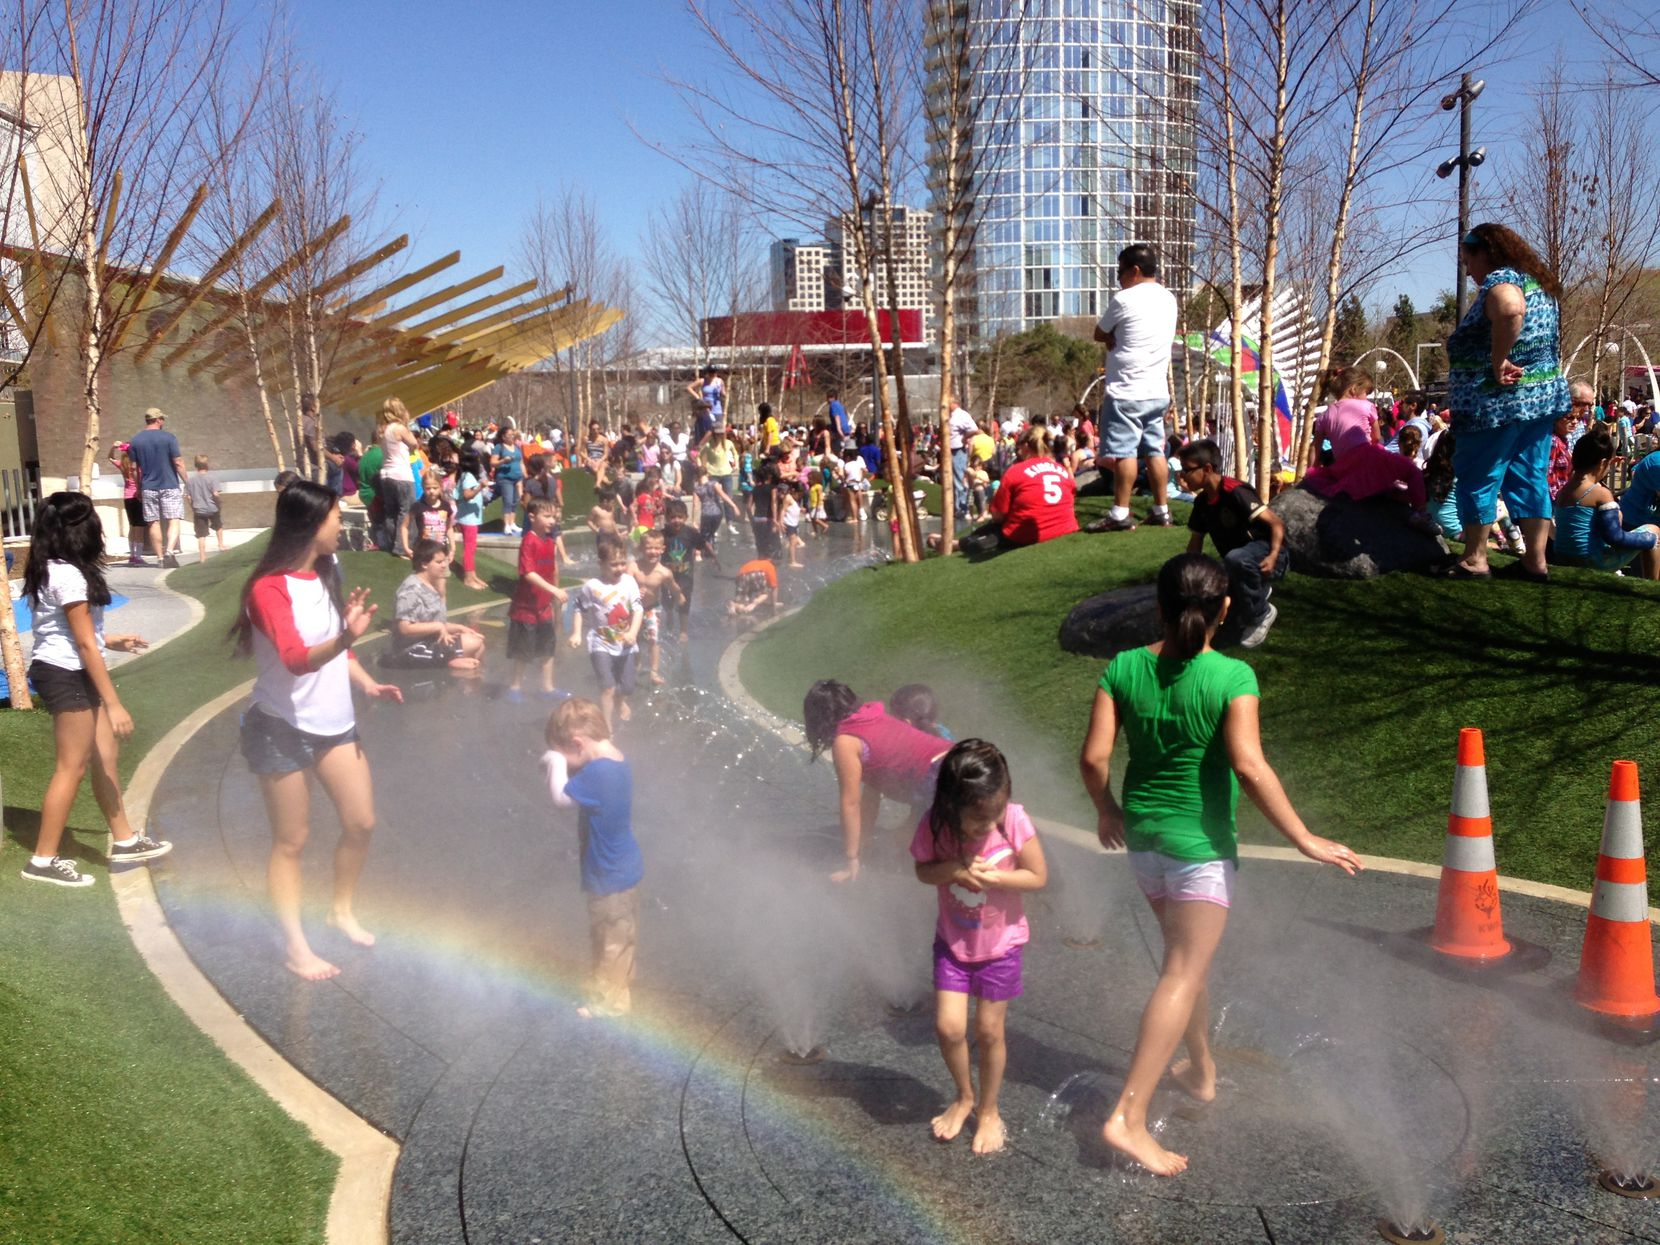 Kids play in the water feature at Klyde Warren Park's Children's Park. Jim Garland designed the park's three existing water features.